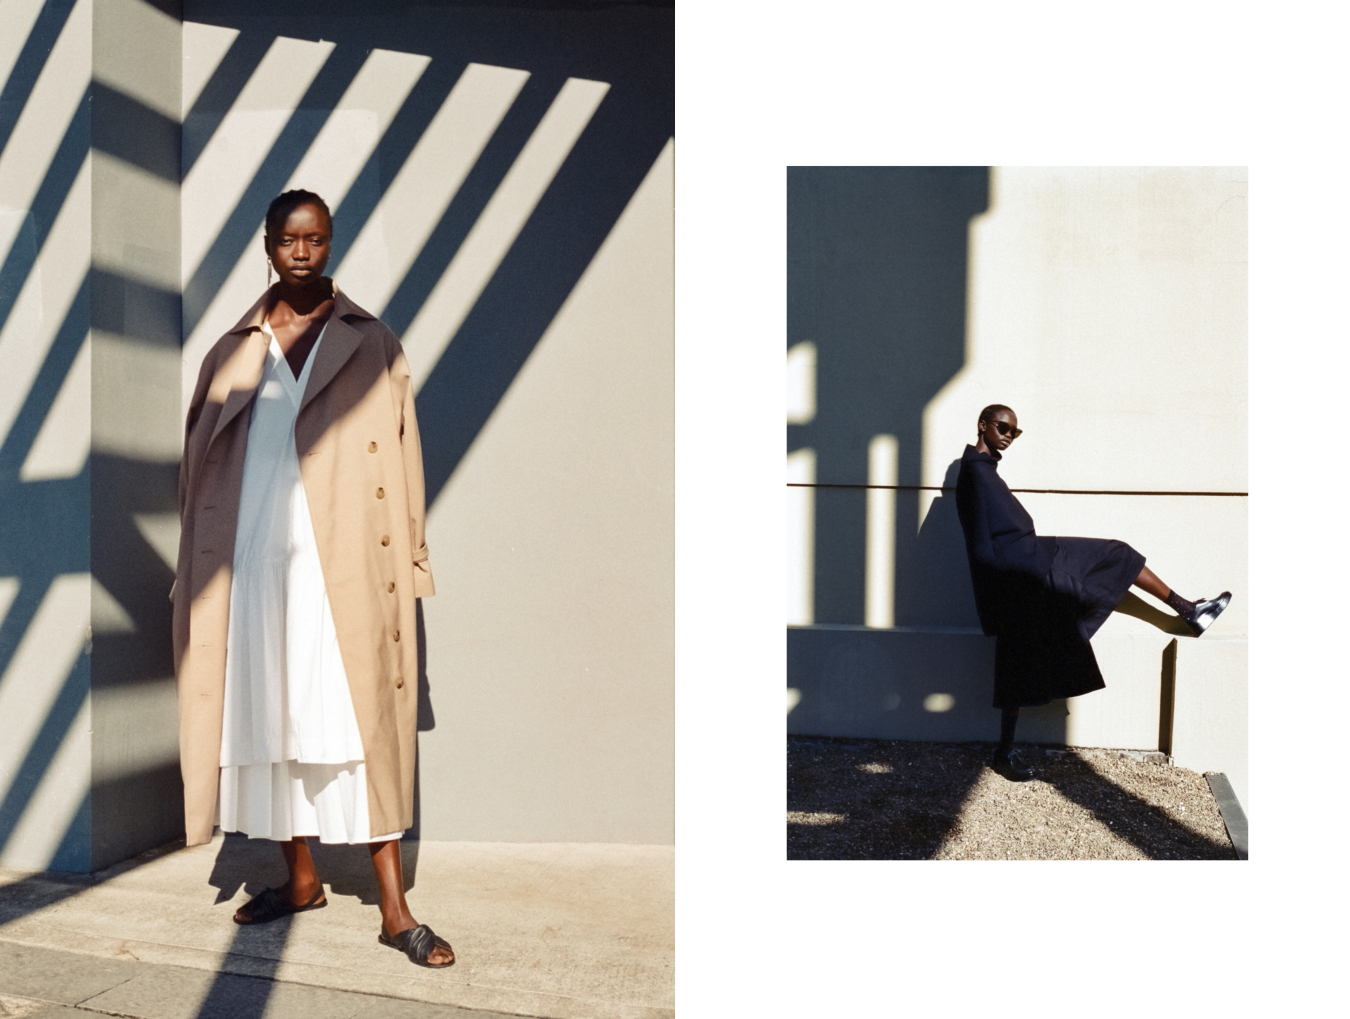 Left: Lee Mathews dress, Stylist's own skirt, Toteme trench coat, Cos sandals, Stylist's own earrings // Right: cos jumper, Jil Sander shoes, Bassike culottes, Le Specs sunglasses